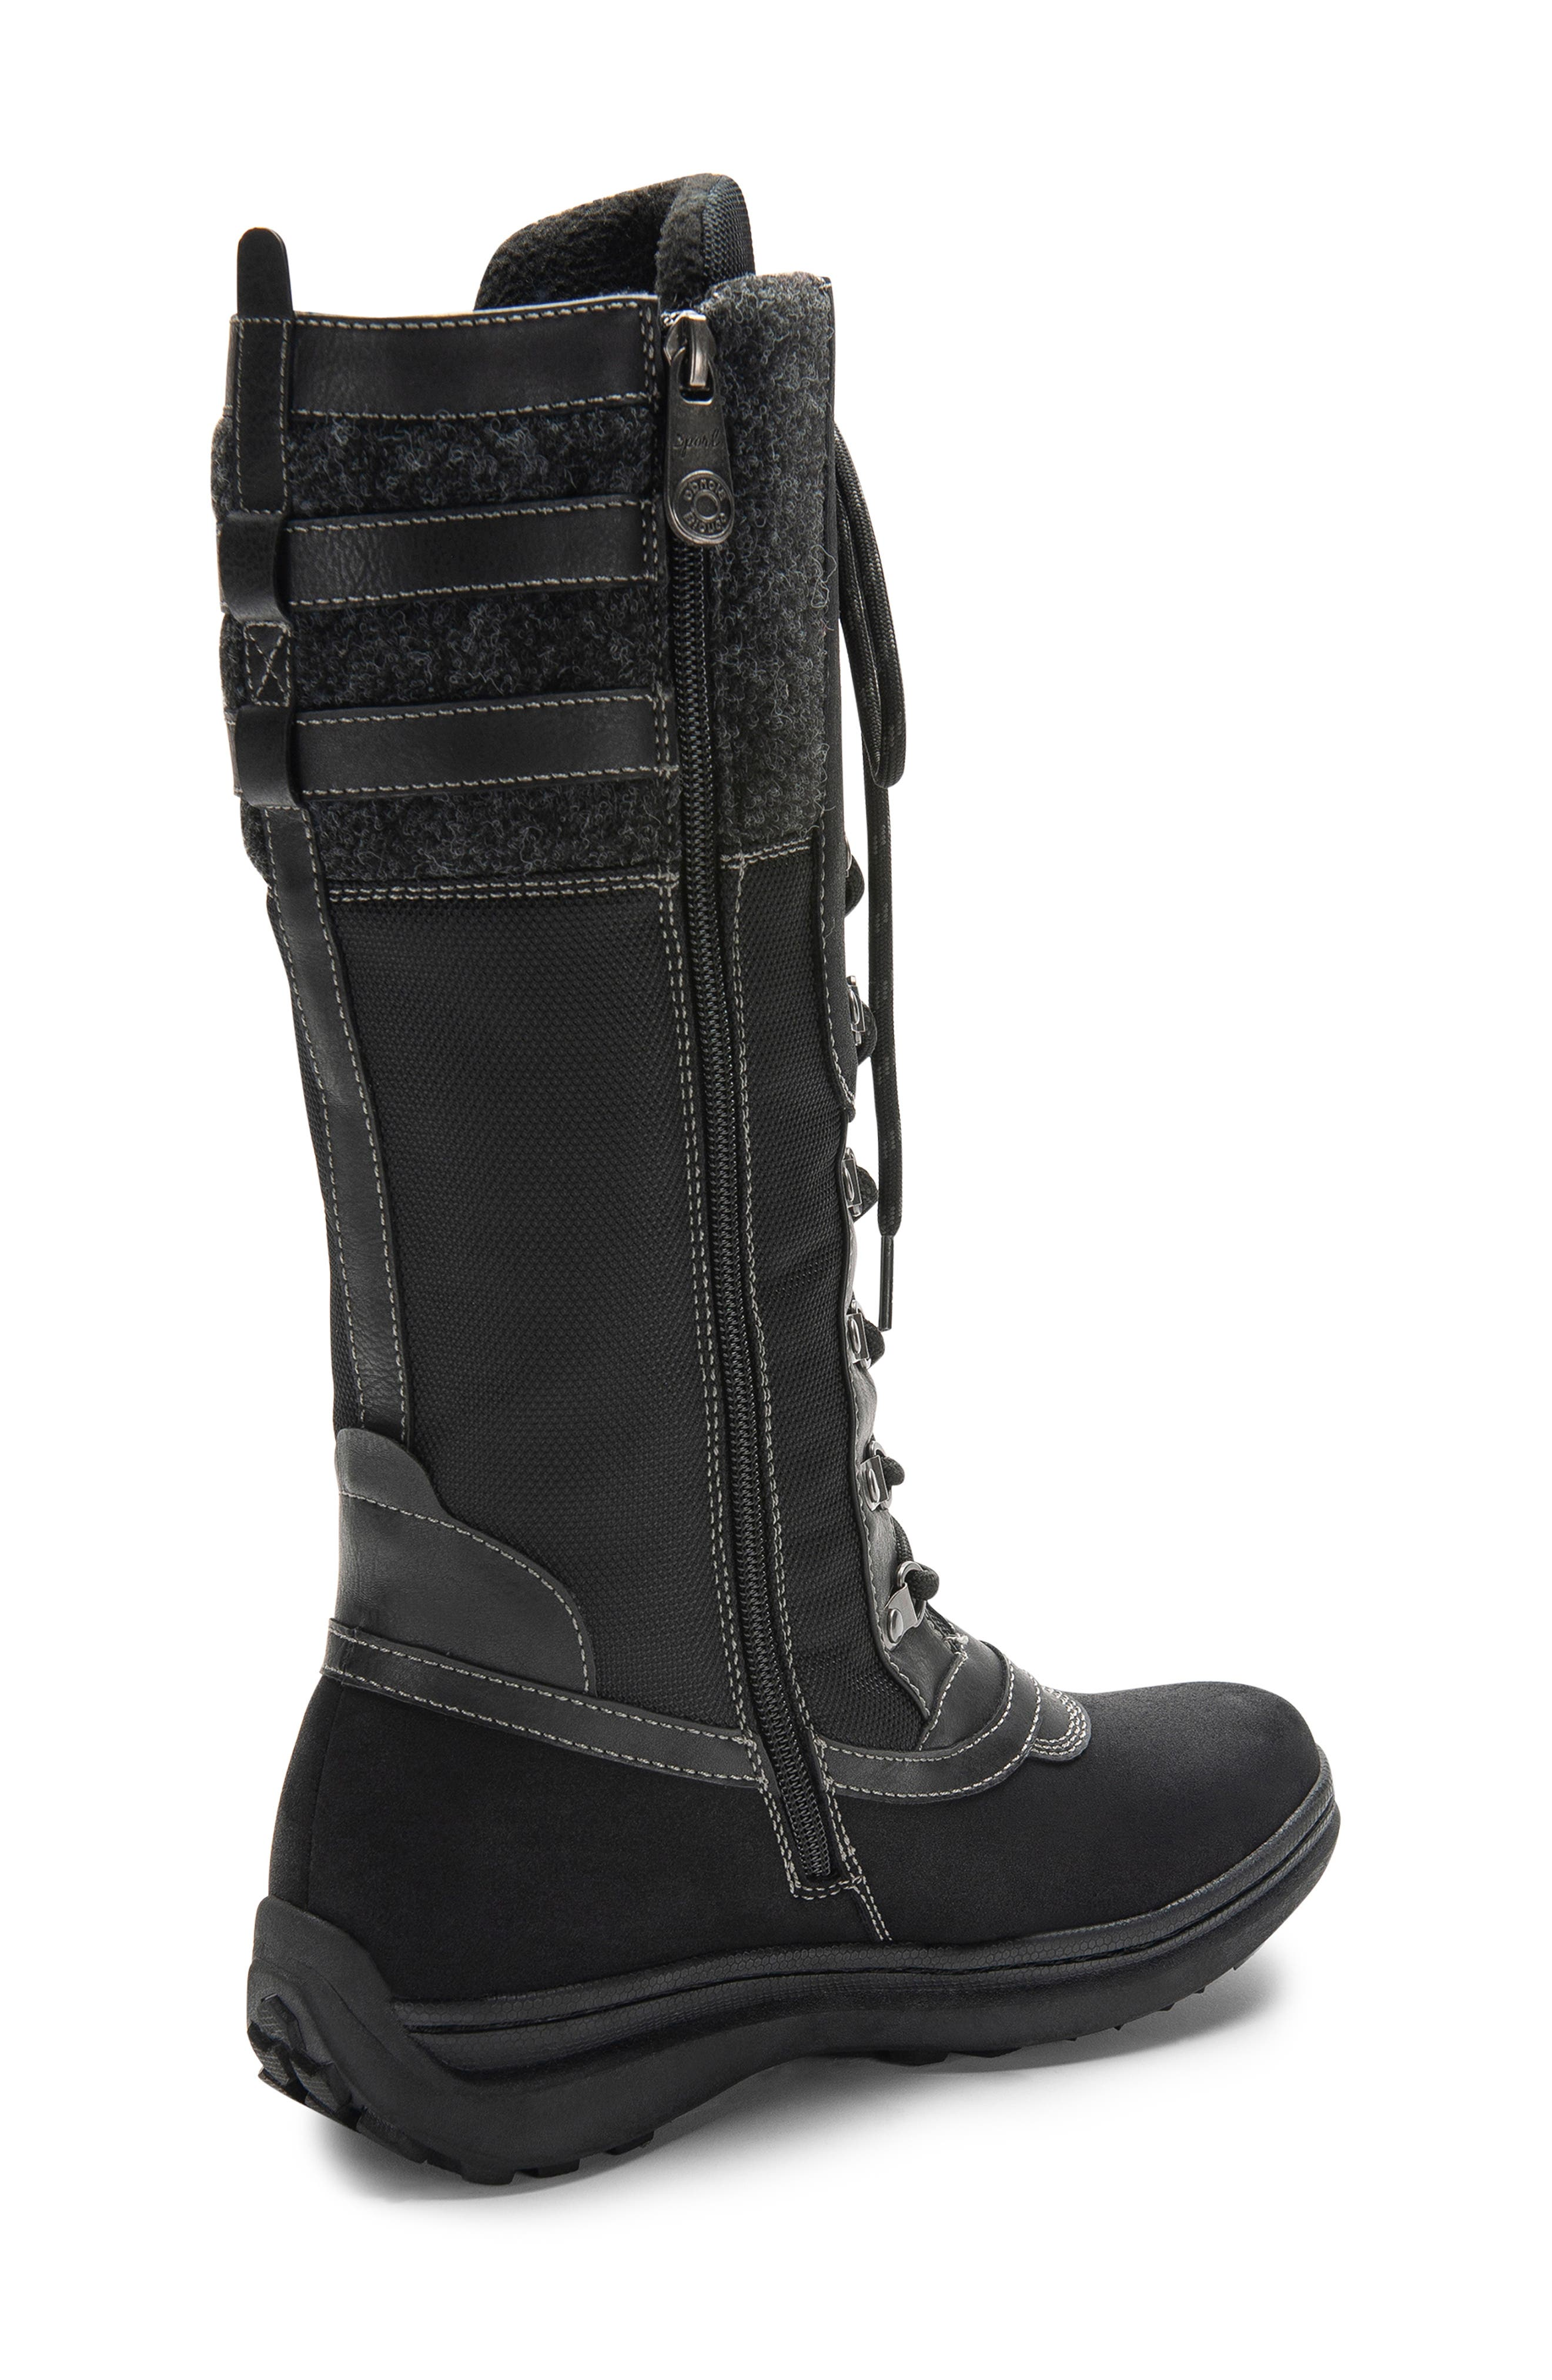 India Waterproof Snow Boot,                             Alternate thumbnail 2, color,                             BLACK LEATHER